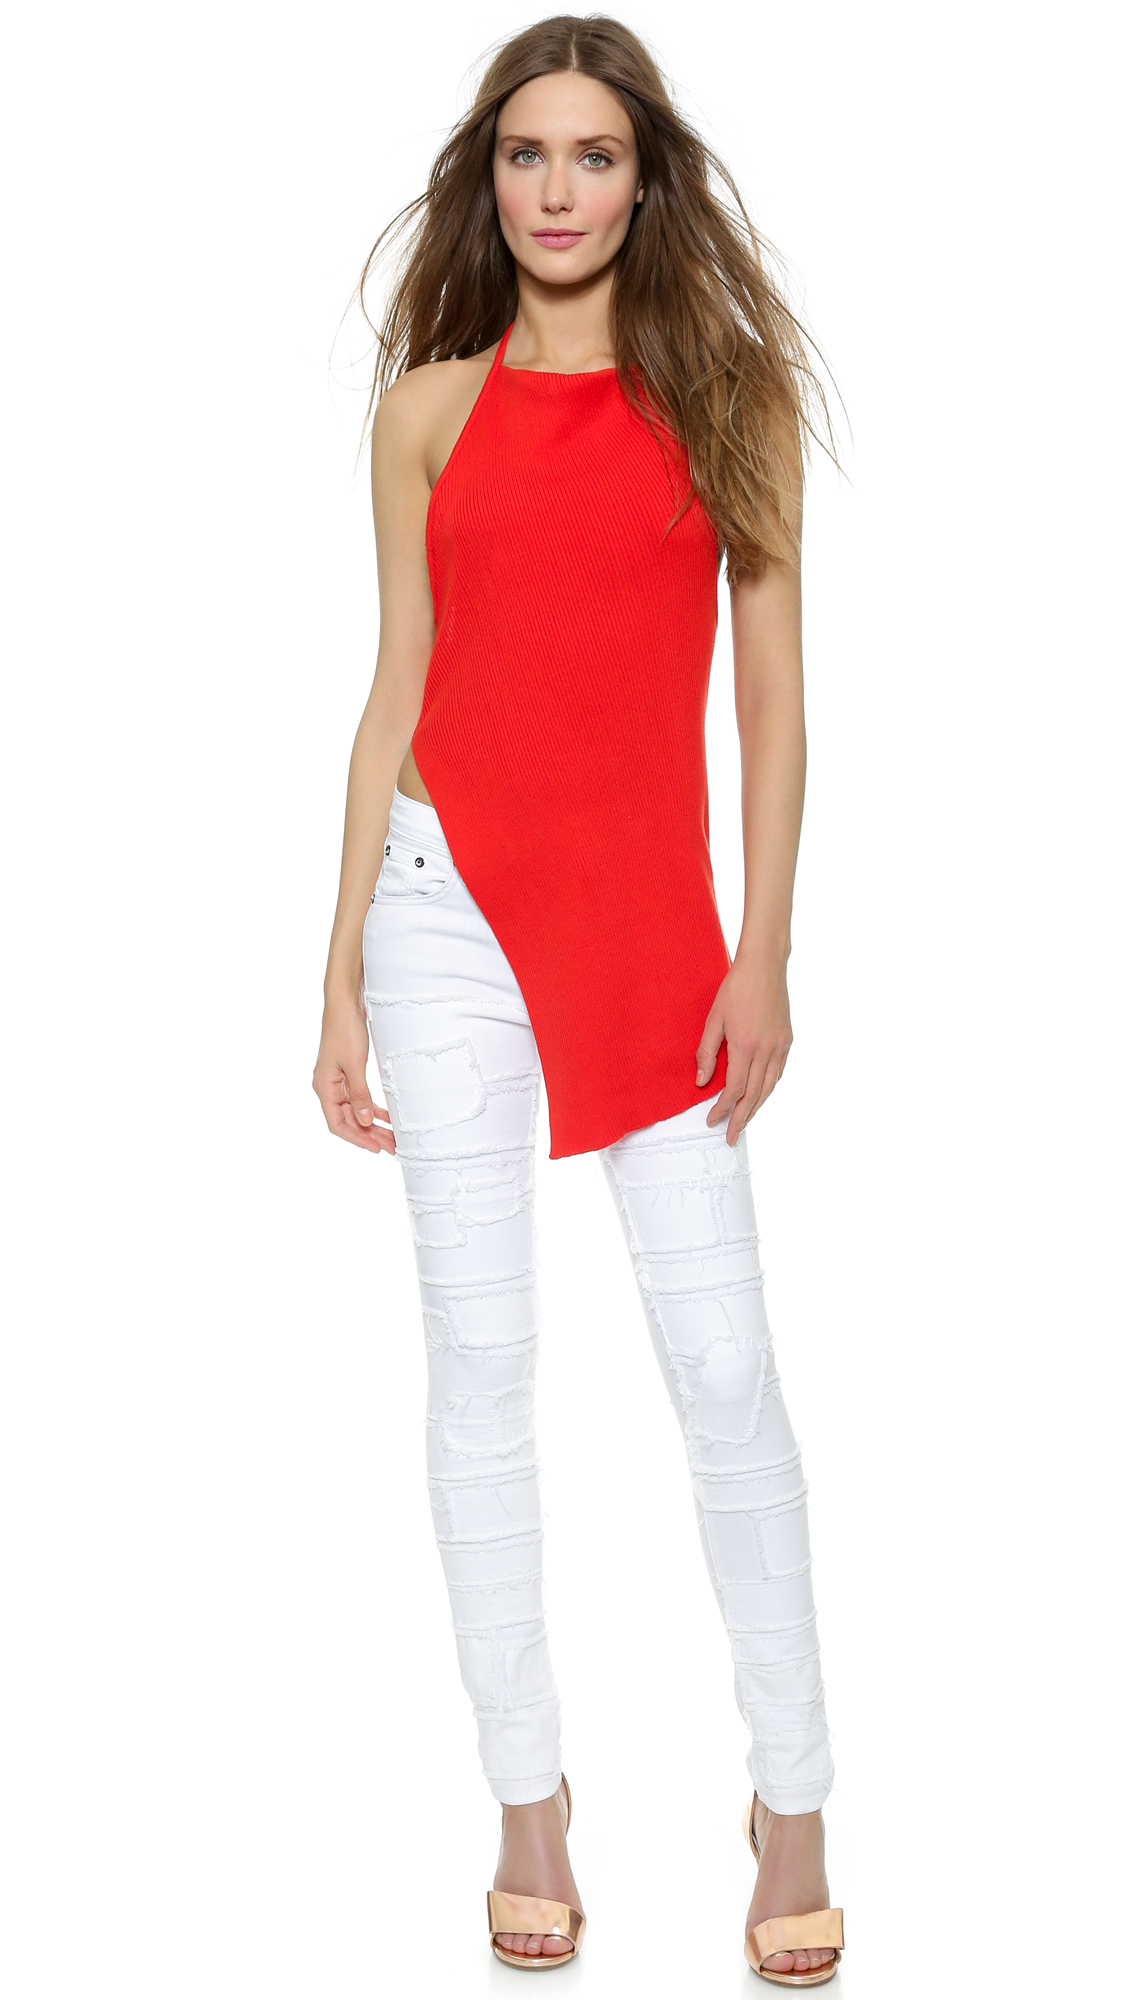 3093695c5fd Lyst - Marques Almeida Asymmetrical Halter Neck Top - Red in Red